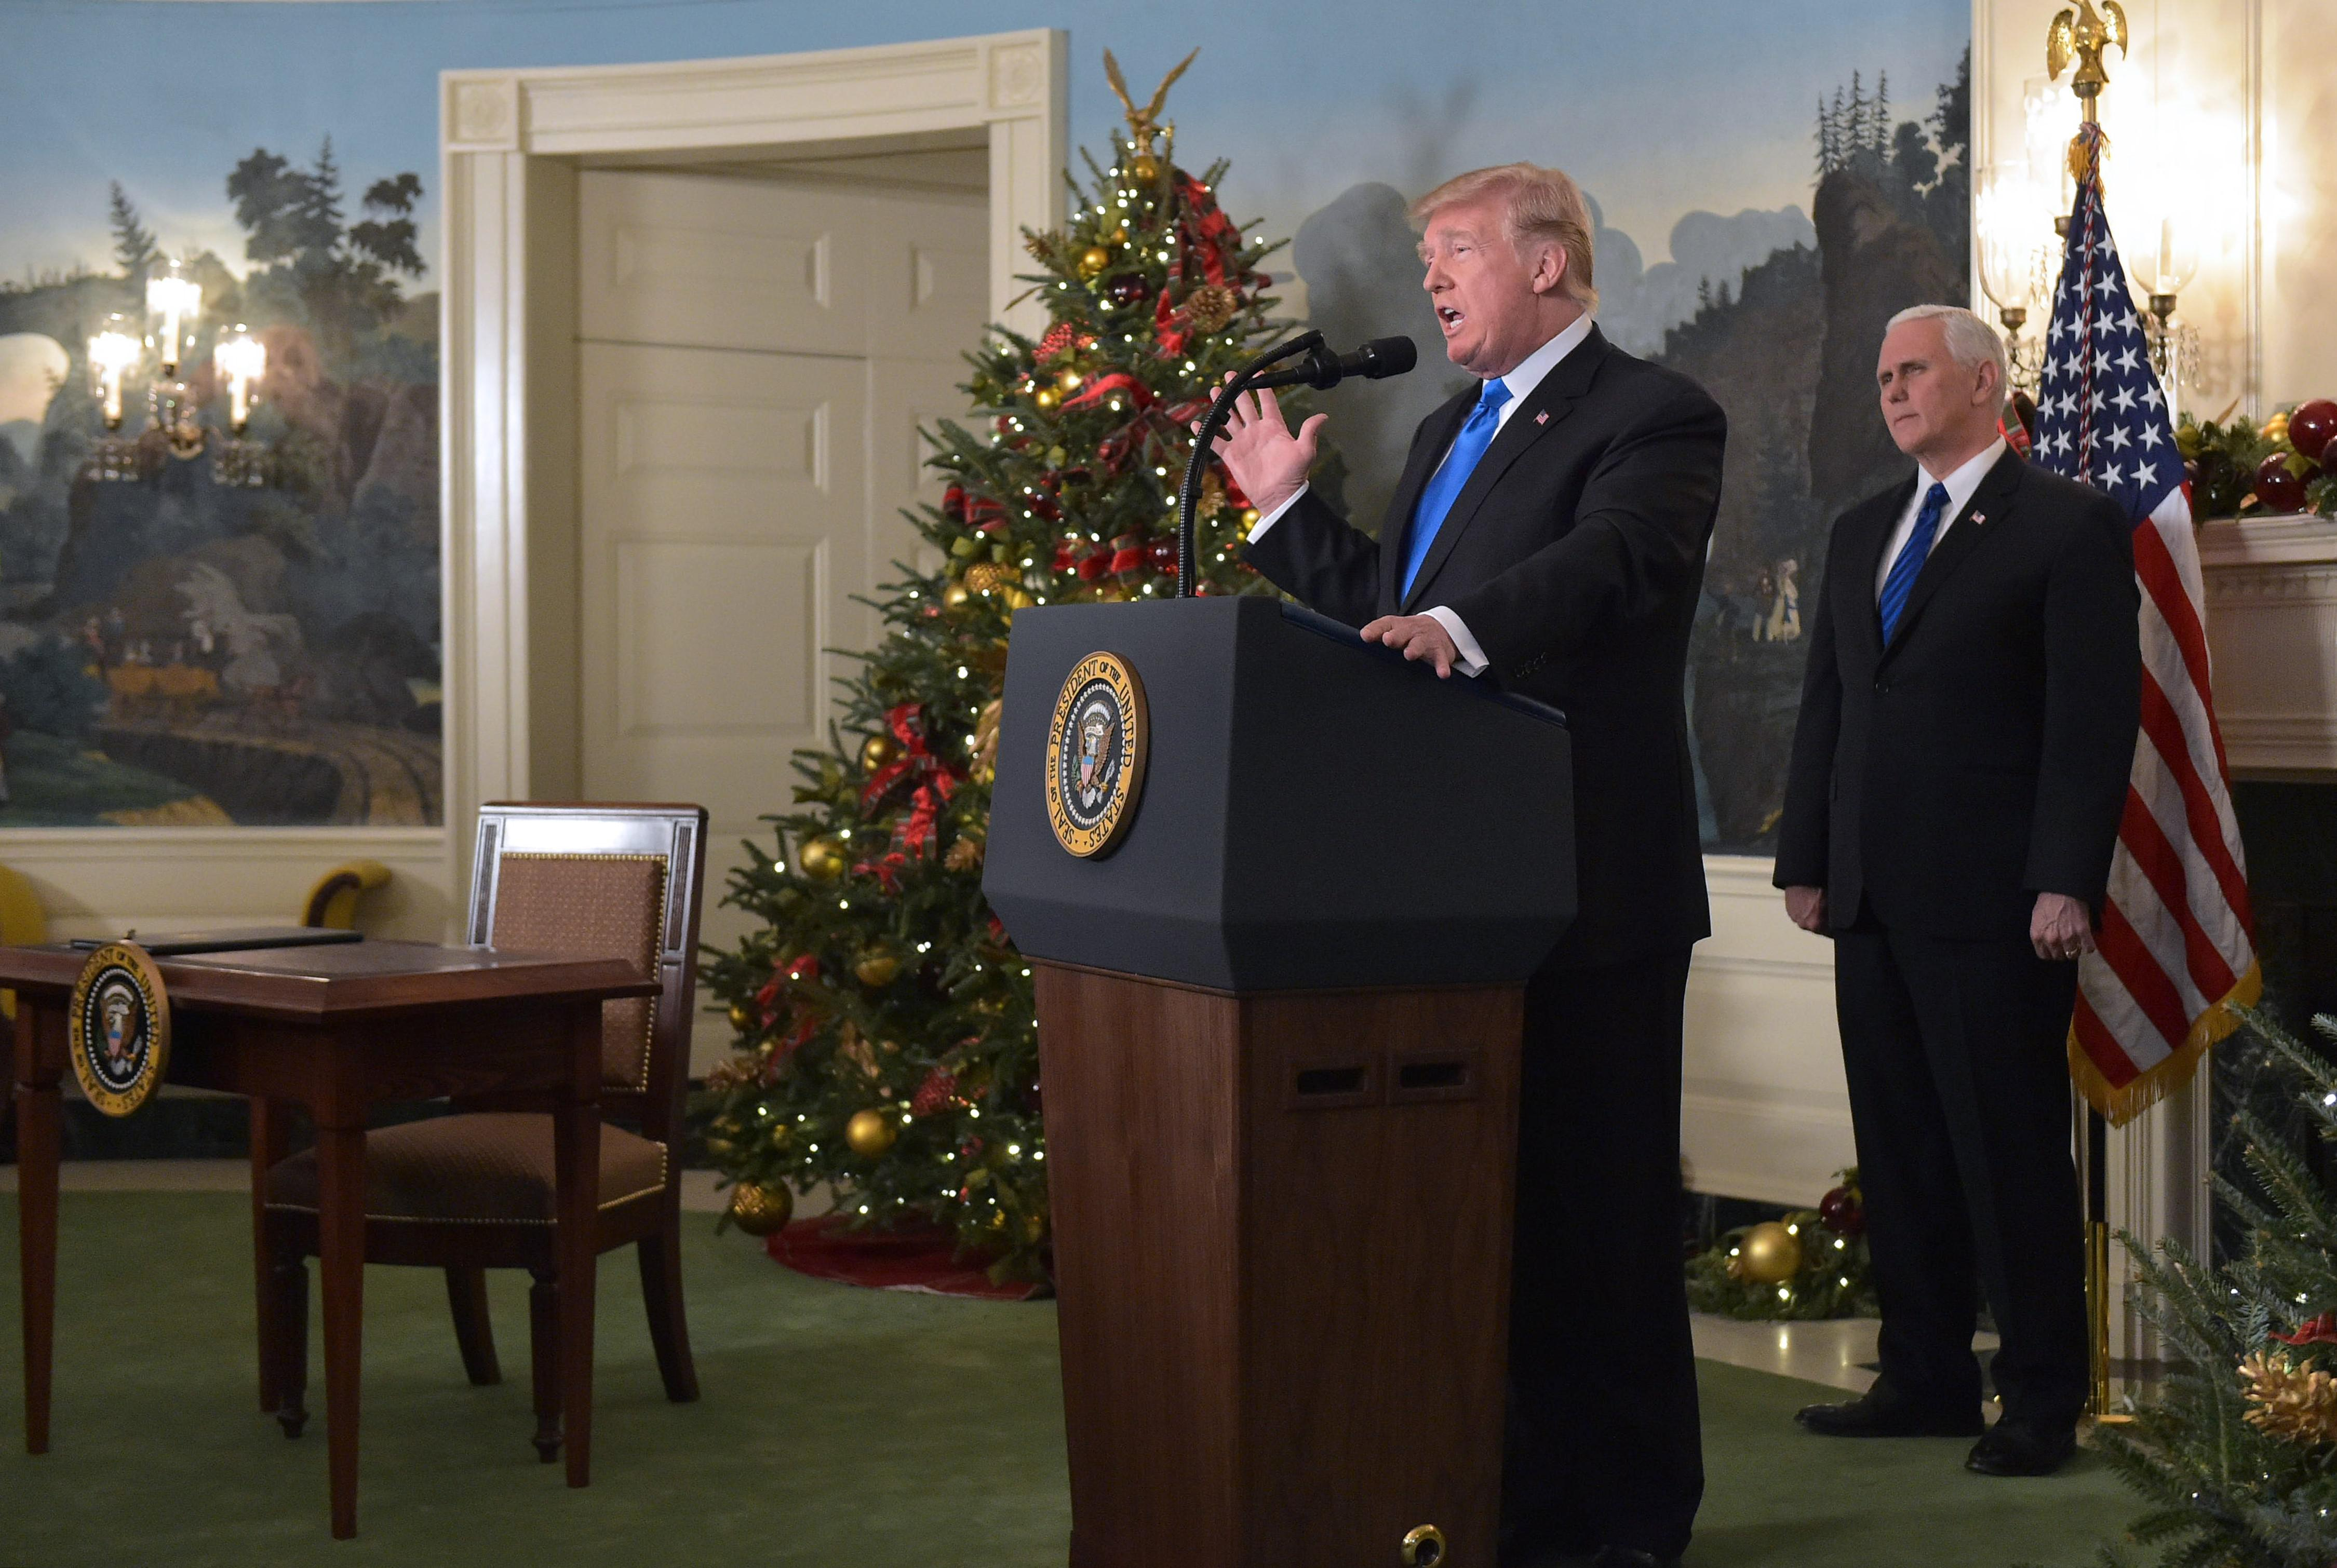 US President Donald Trump delivers a statement on Jerusalem from the Diplomatic Reception Room of the White House in Washington, DC on December 6, 2017 as US Vice President Mike Pence looks on.  / AFP PHOTO / MANDEL NGAN        (Photo credit should read MANDEL NGAN/AFP/Getty Images)